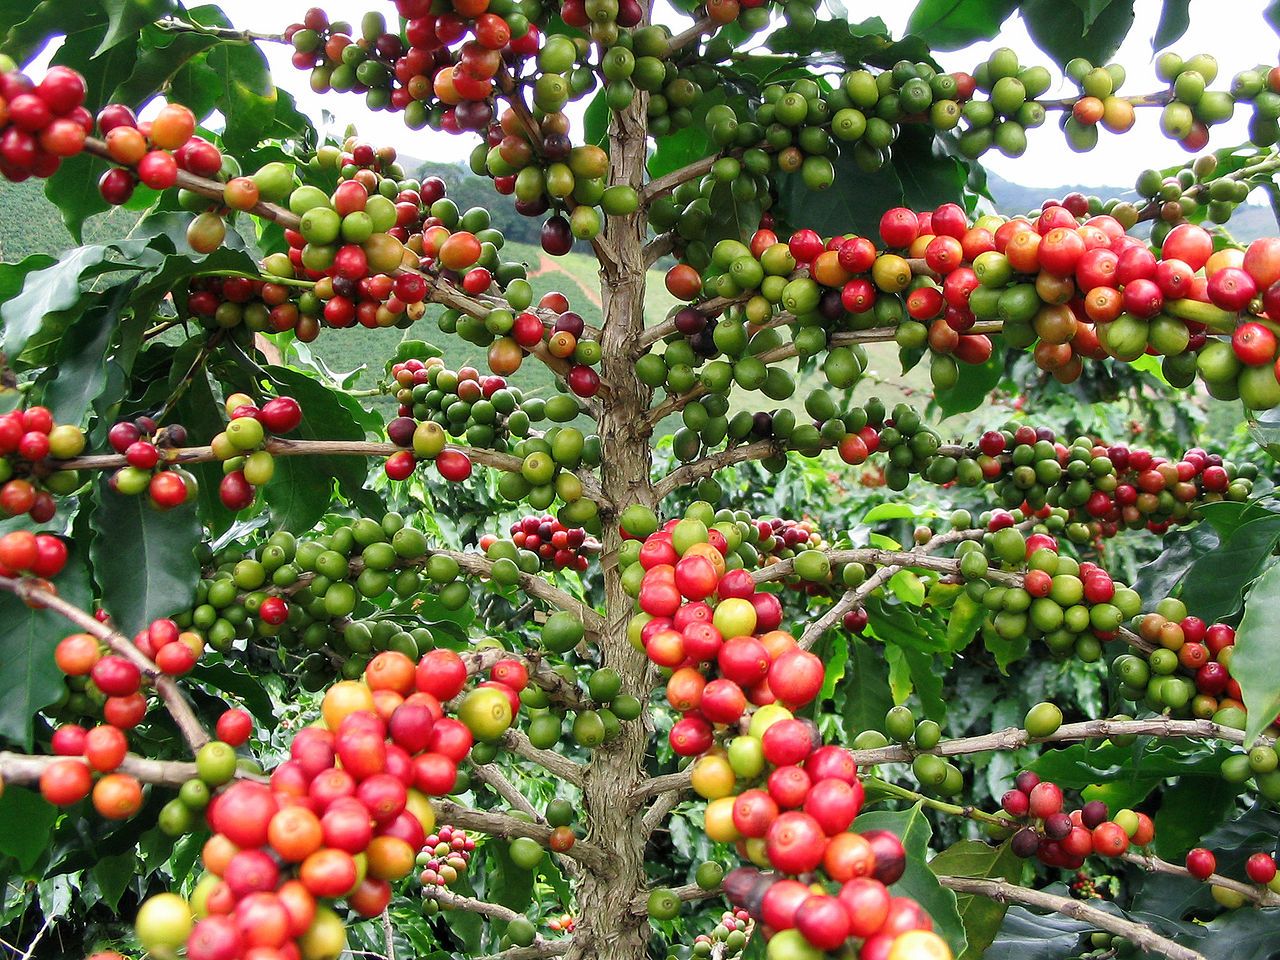 coffea arabica berries by FCRebelo Wikimedia Commons